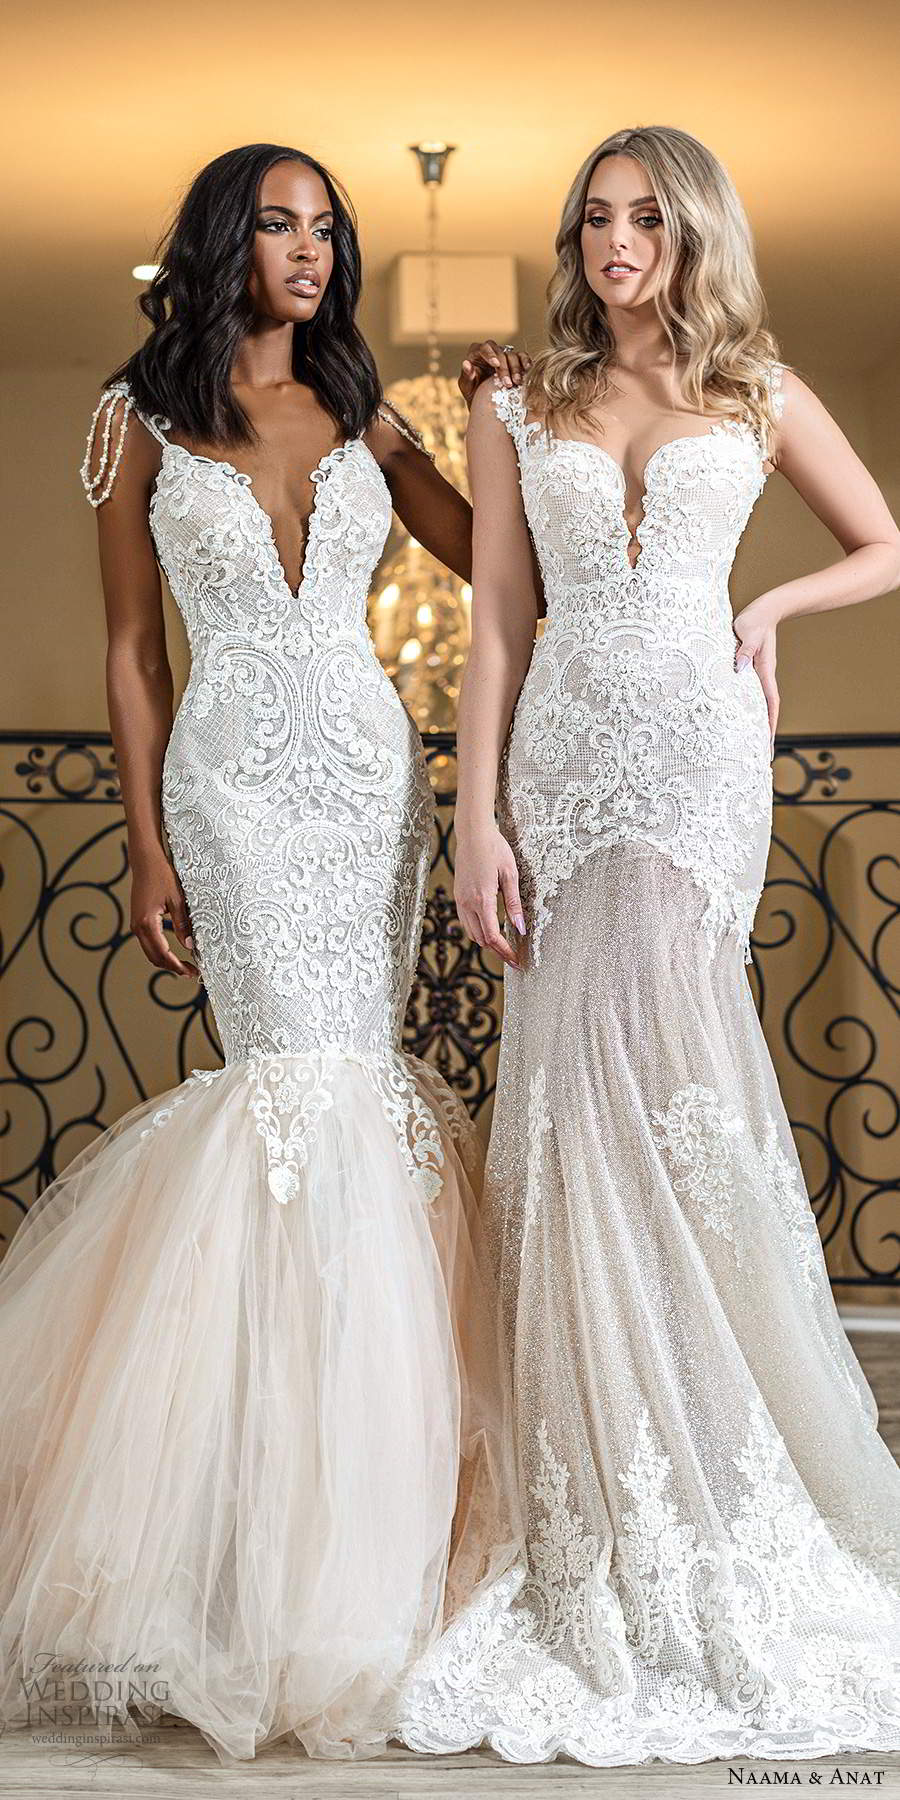 naama anat spring 2020 knottinghill bridal cap sleeves queen anne neckline fully embellished lace fit flare glitzy blush wedding dress chapel train (6) fv